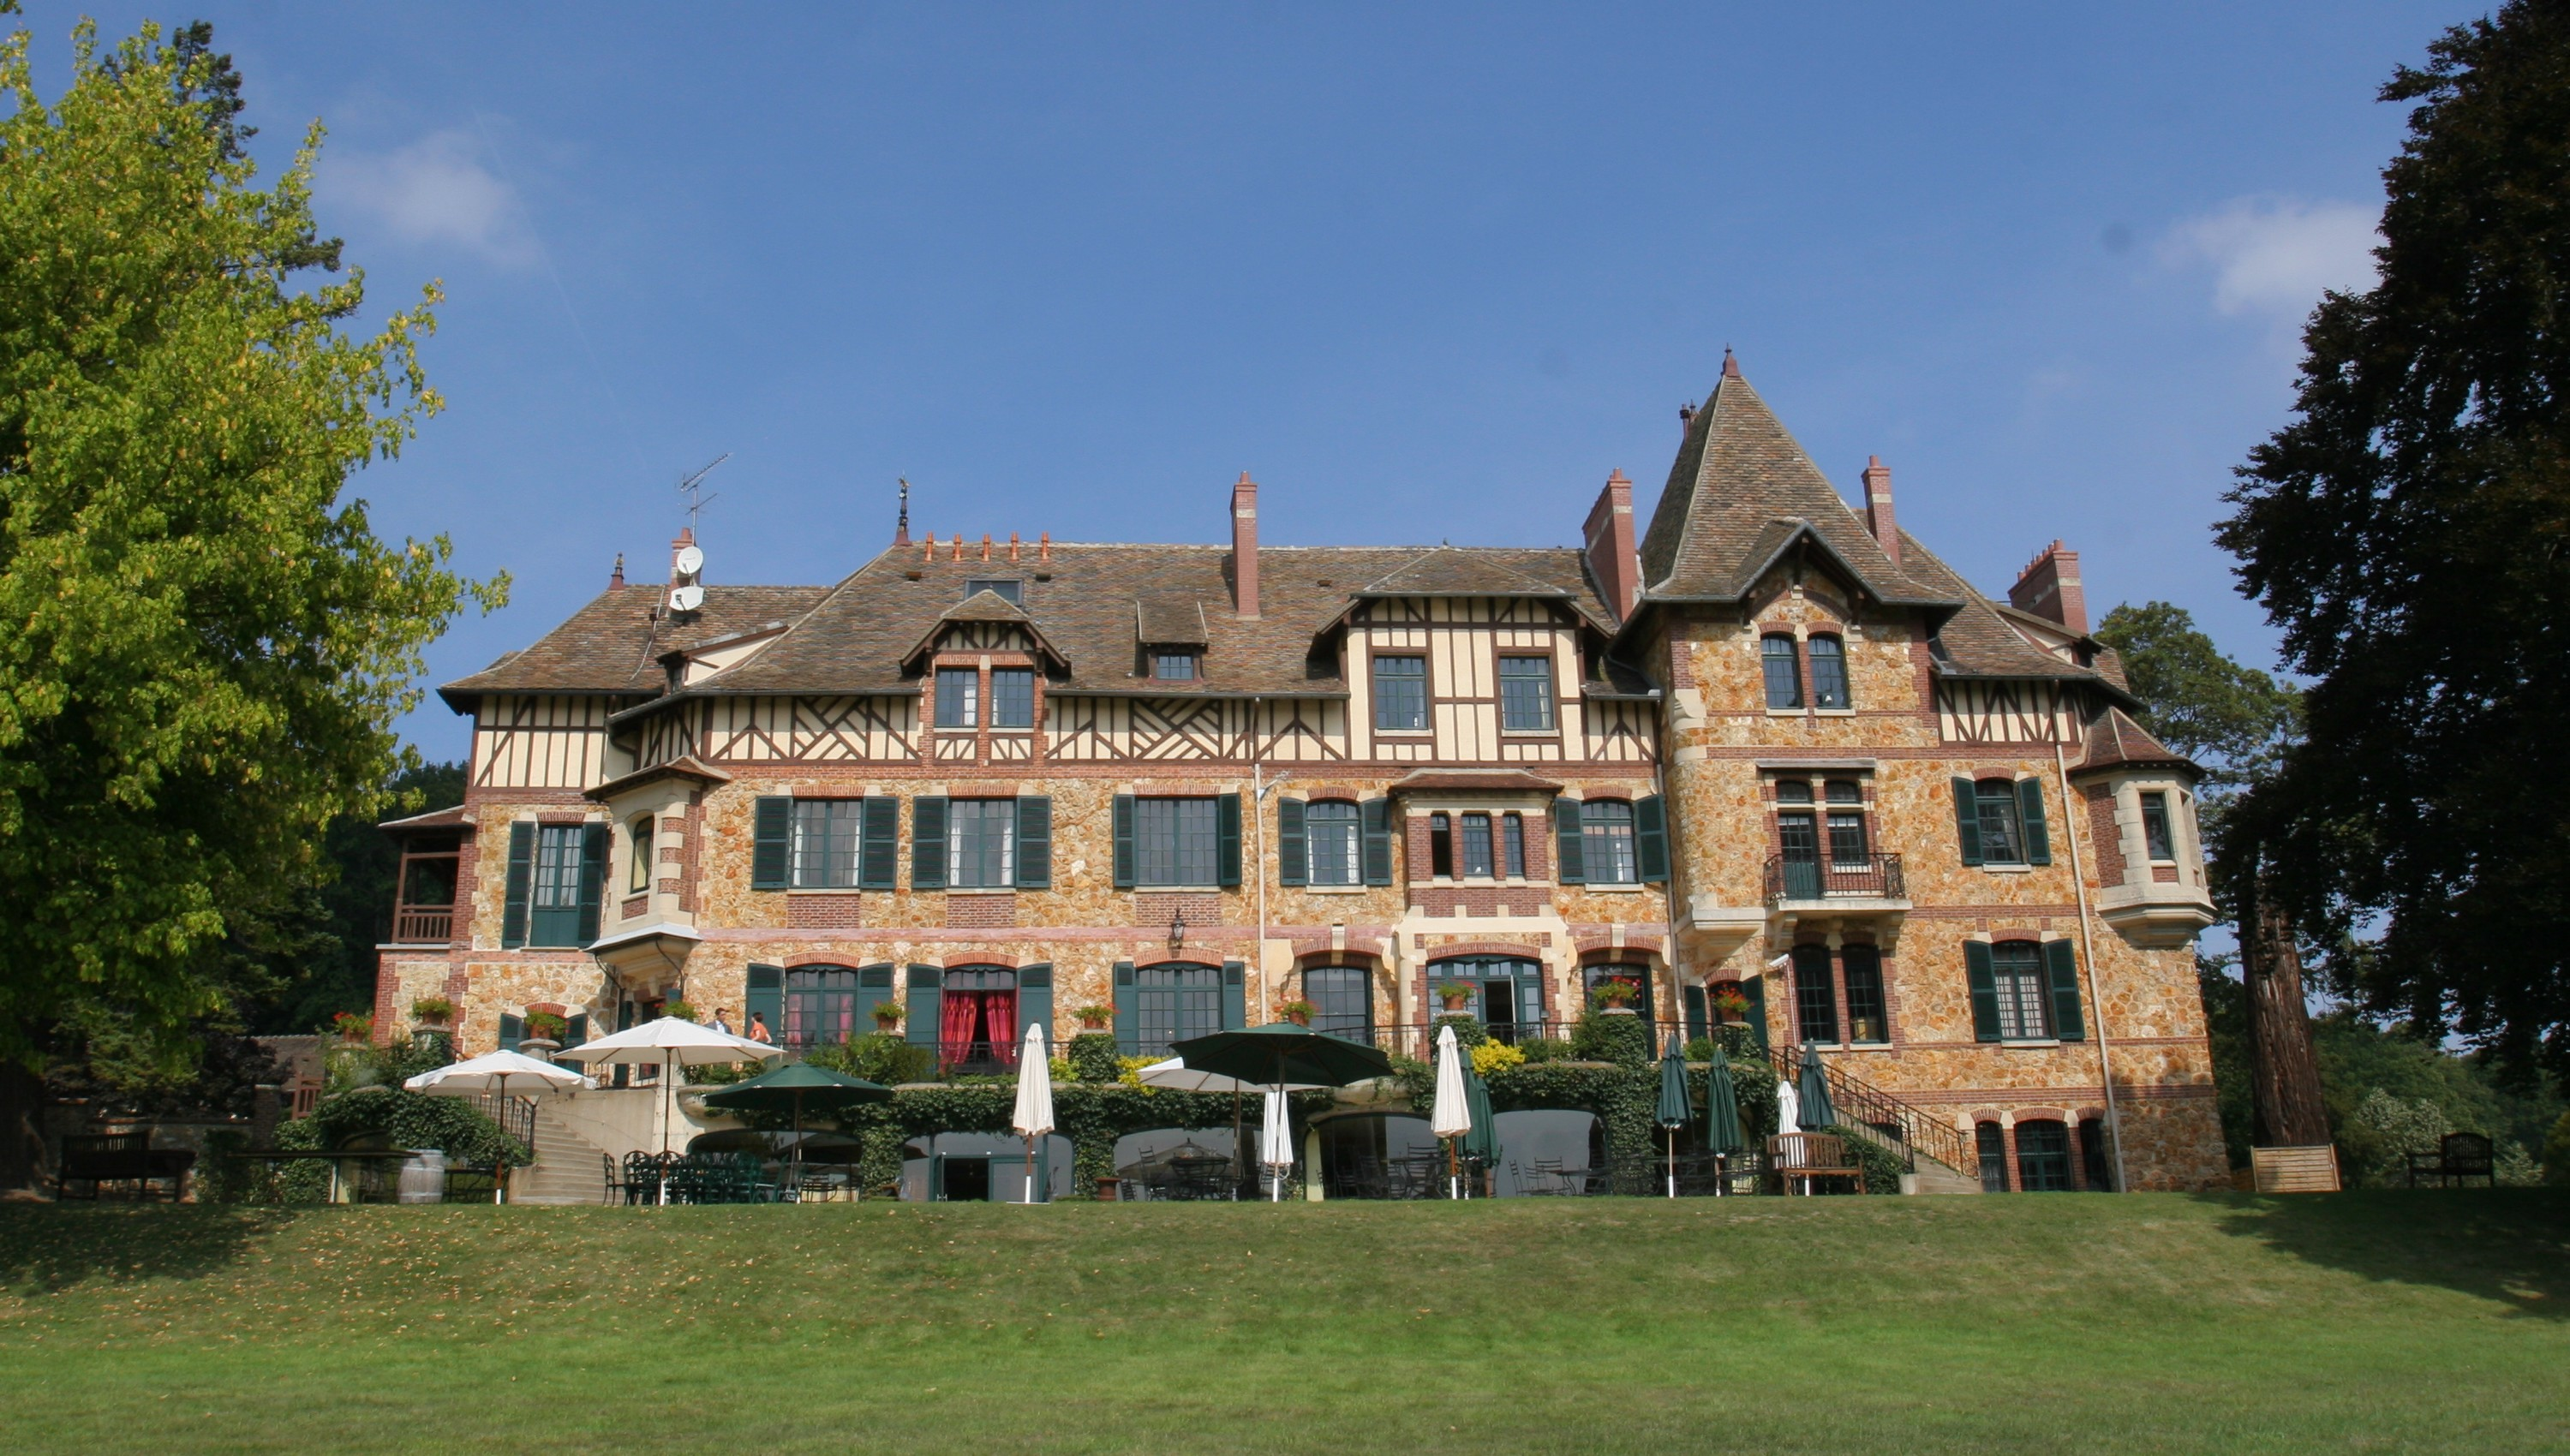 Ch teau de romainville yvelines wikiwand for Chateau des yvelines